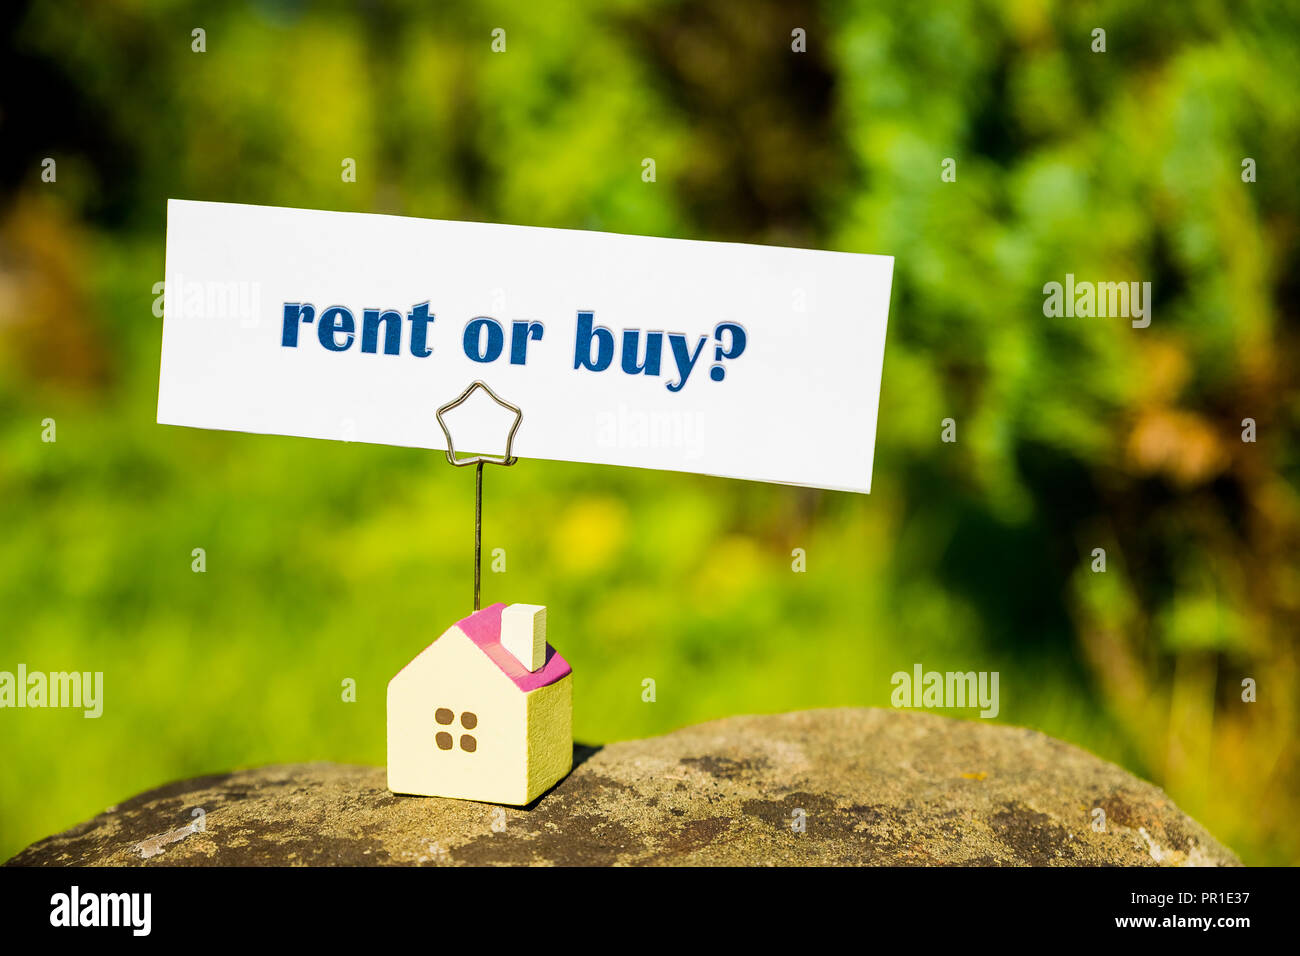 choosing rent or buy option ,small house model isolated on nature background, housing real estate and property owner concept. real estate question, businessman making decision.Country house. Copy space - Stock Image